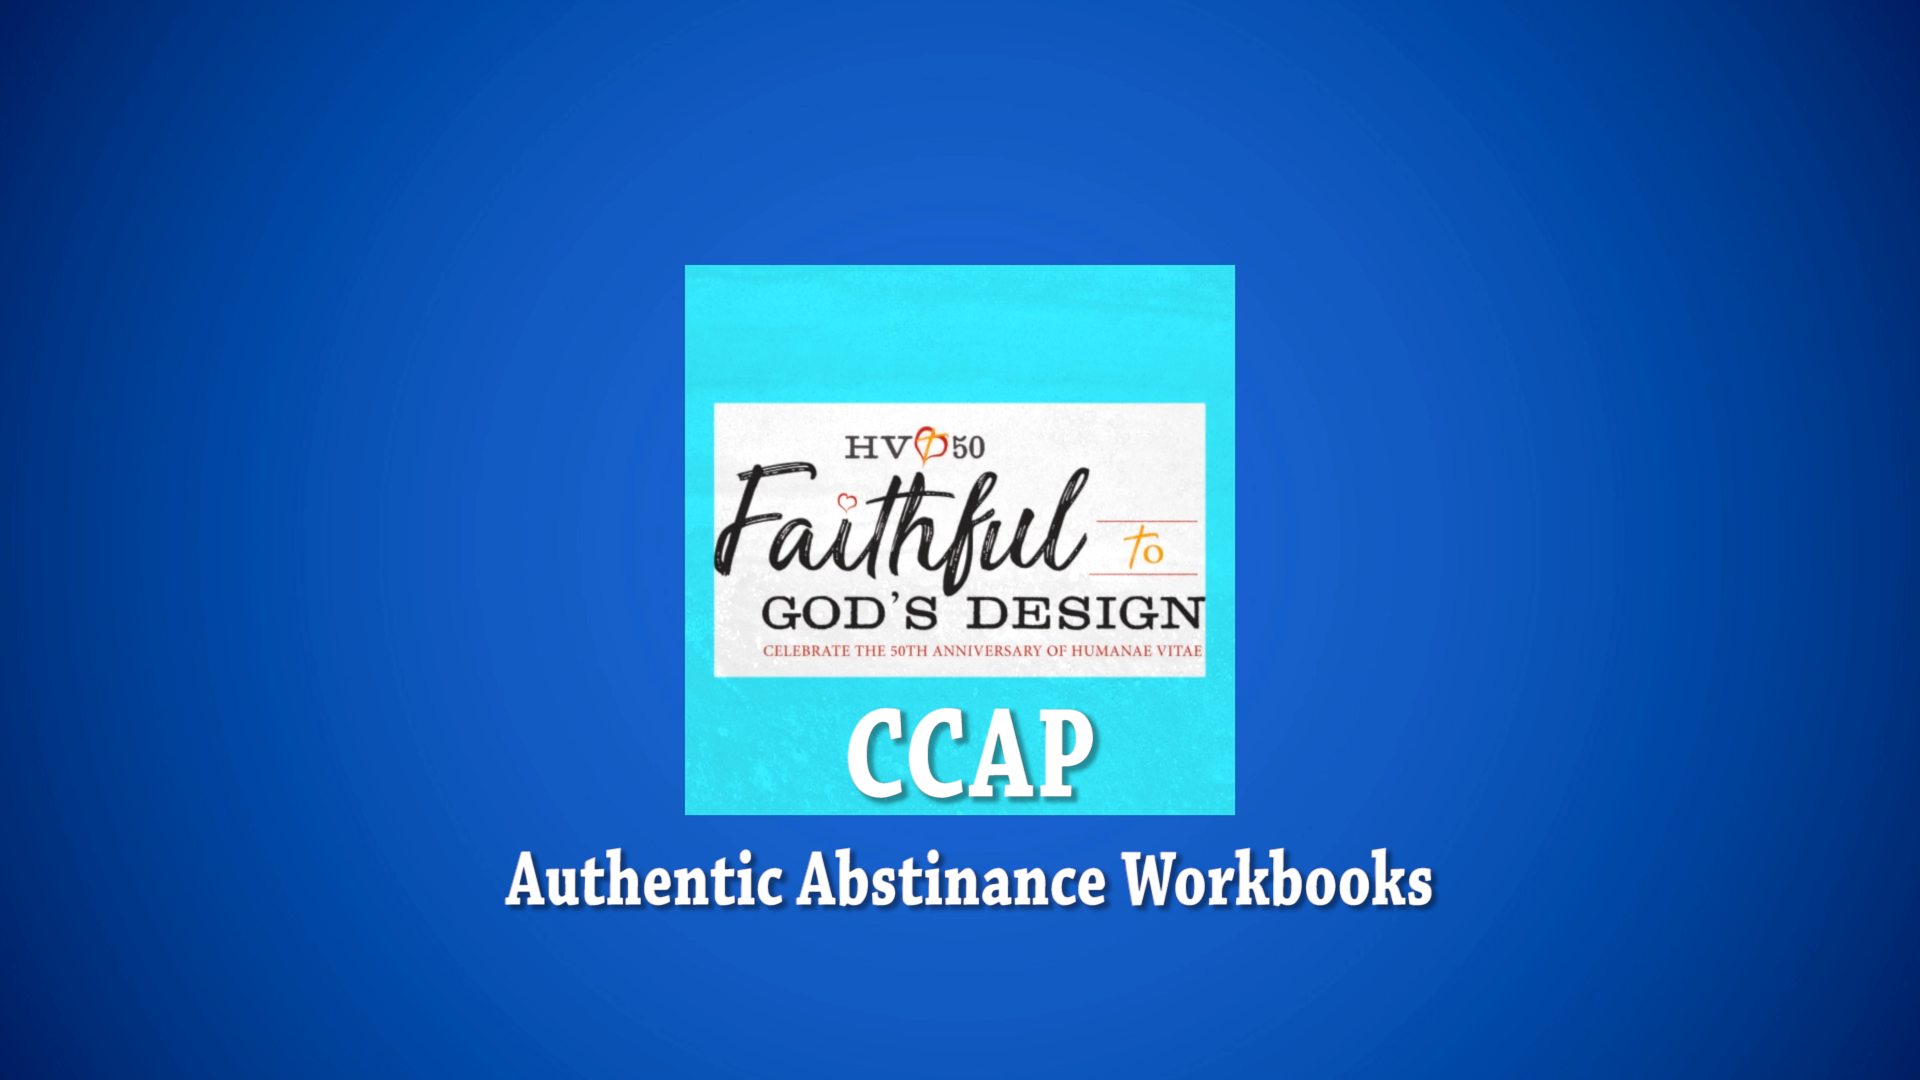 CCAP   Authentic Abstinence Workbooks